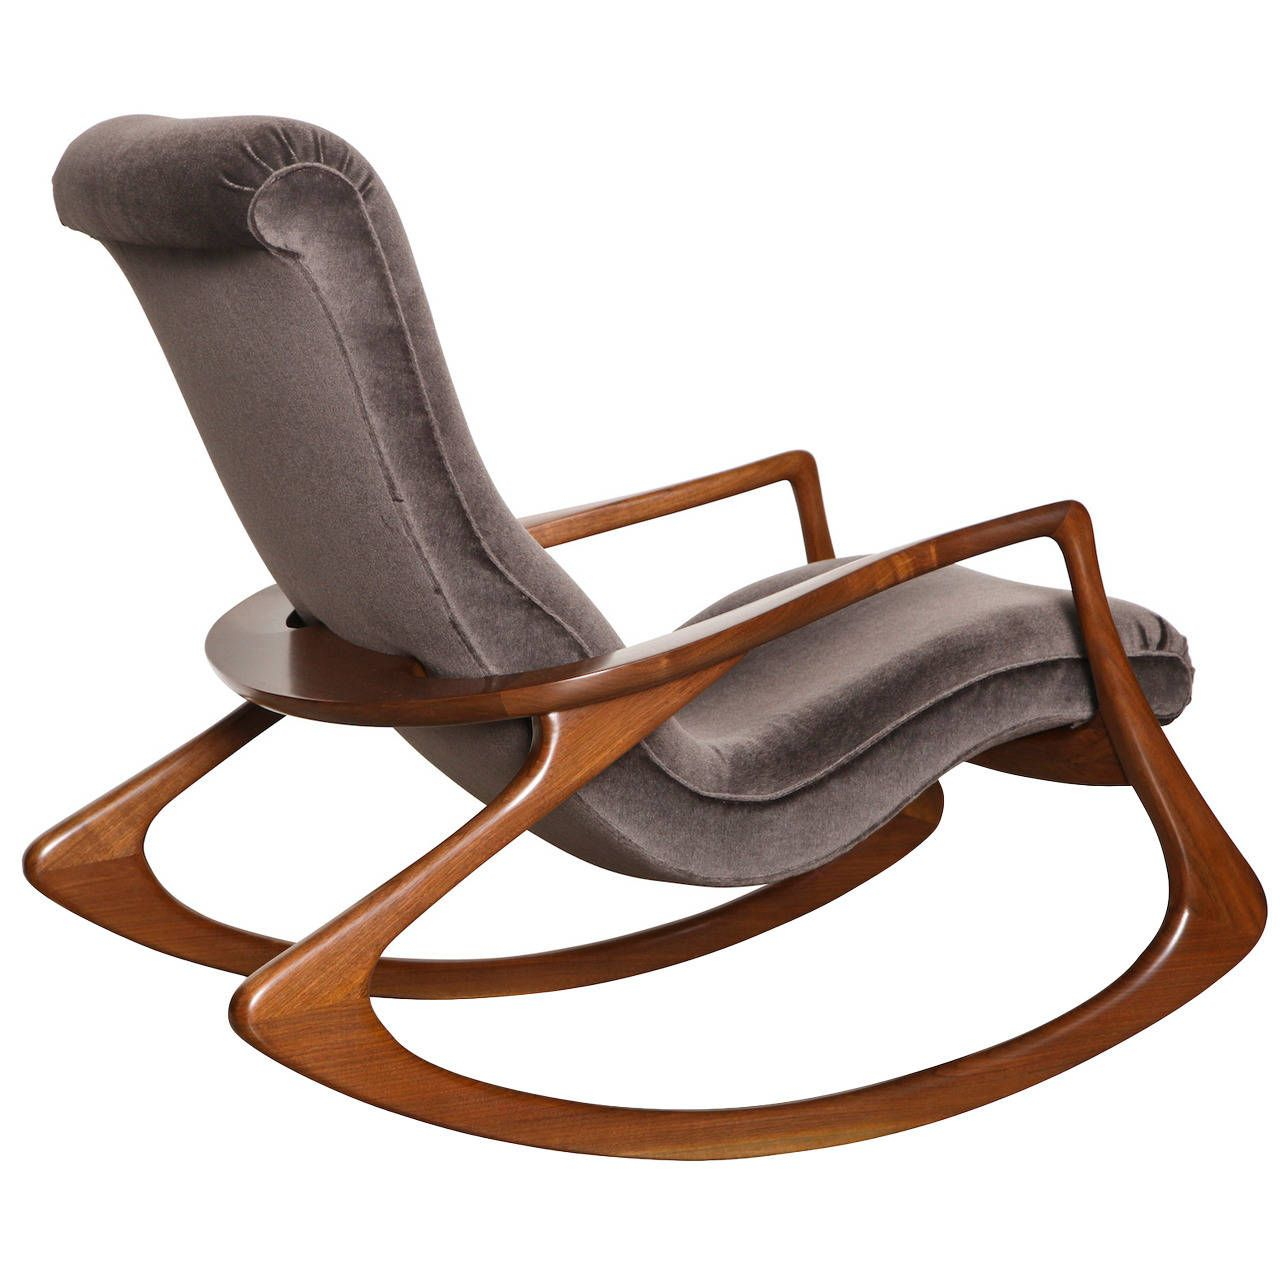 Exceptionnel Contour Rocking Chair By Vladimir Kagan | From A Unique Collection Of  Antique And Modern Rocking Chairs At ...